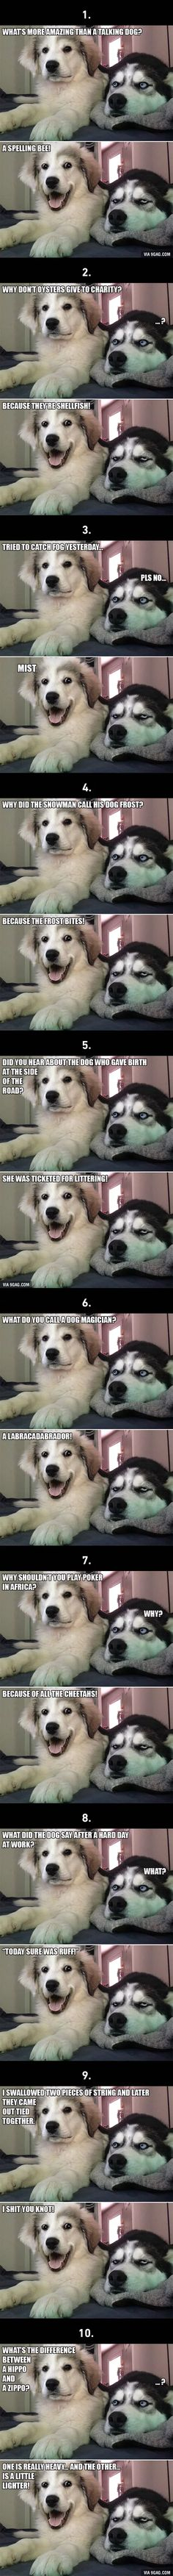 10 Best Bad Puns Dog Memes Ever is part of Puns jokes - More memes, funny videos and pics on Funny Animal Jokes, Dog Jokes, Puns Jokes, Corny Jokes, Stupid Funny Memes, Funny Puns, Cute Funny Animals, Funny Relatable Memes, Funny Sayings